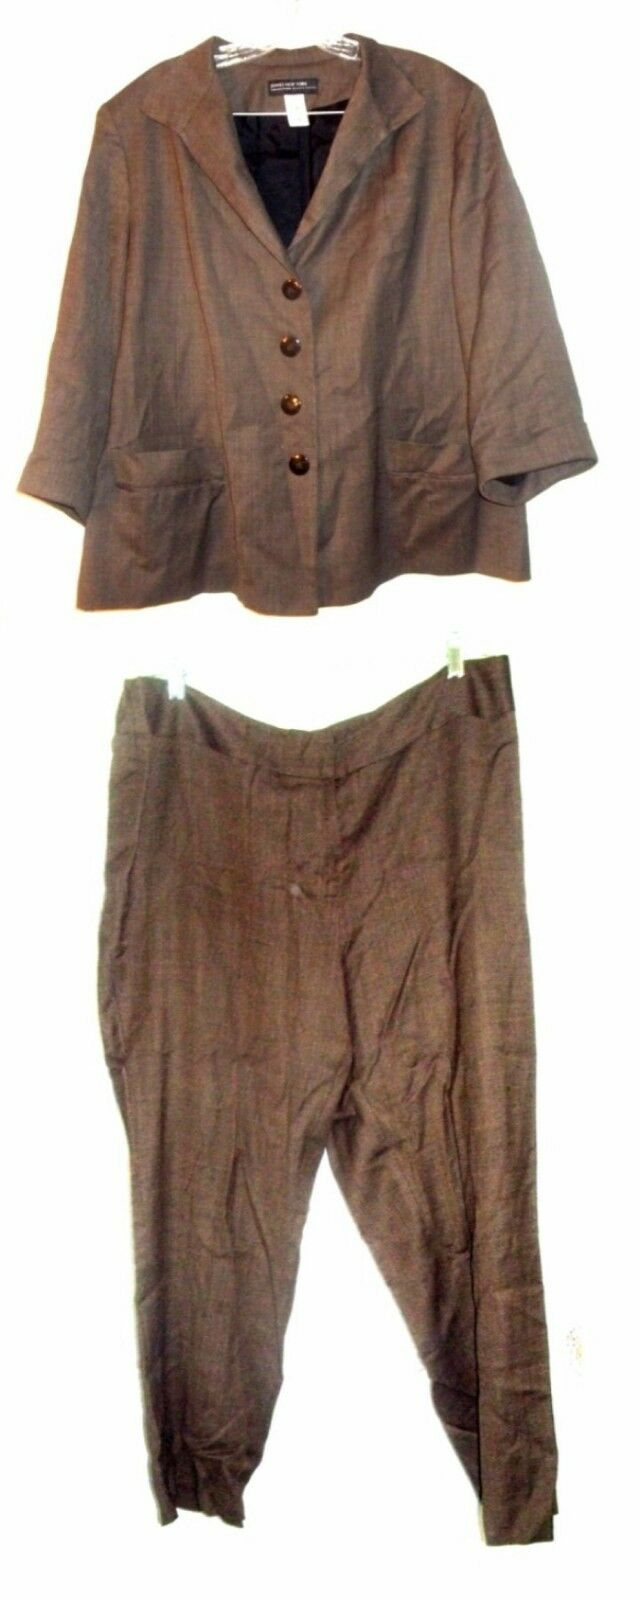 Jones NY Brown Top and Pants Suit Set with Tiny Polka Dots Plus Size 18 20WP